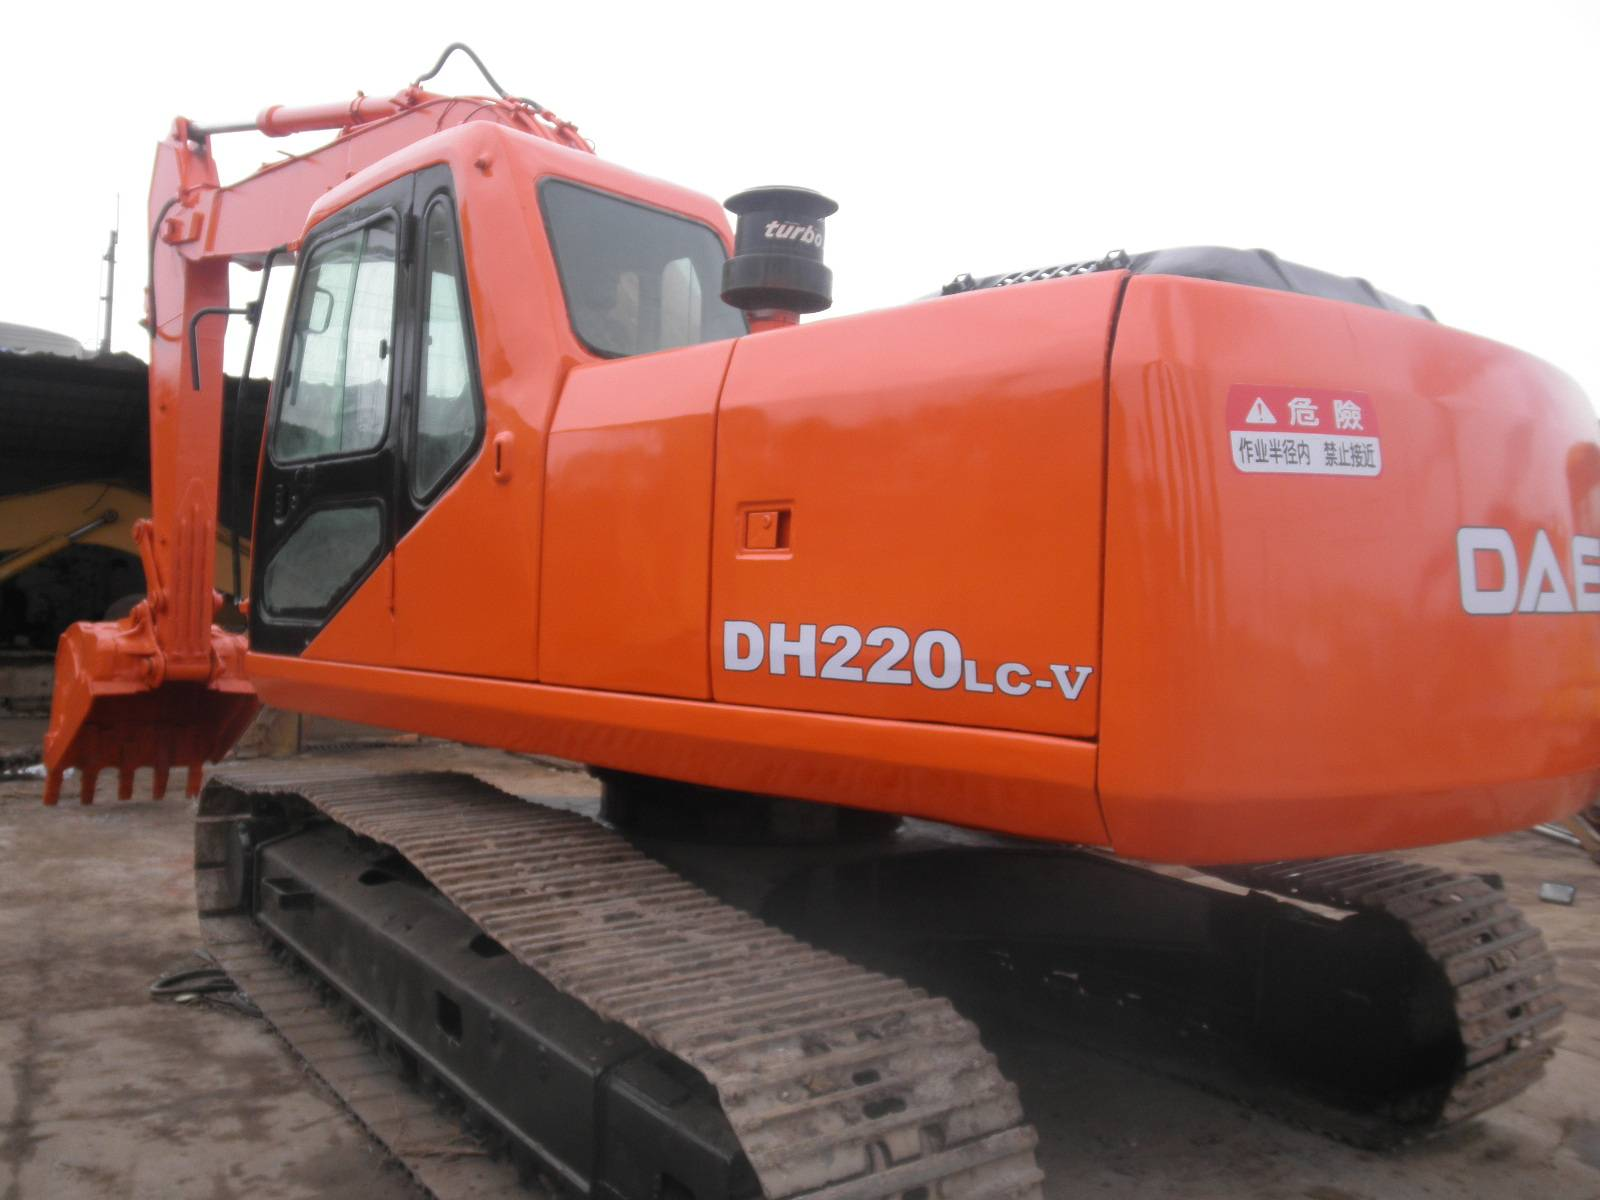 Used Daewoo 220LC-V Crawler Excavator in good condition